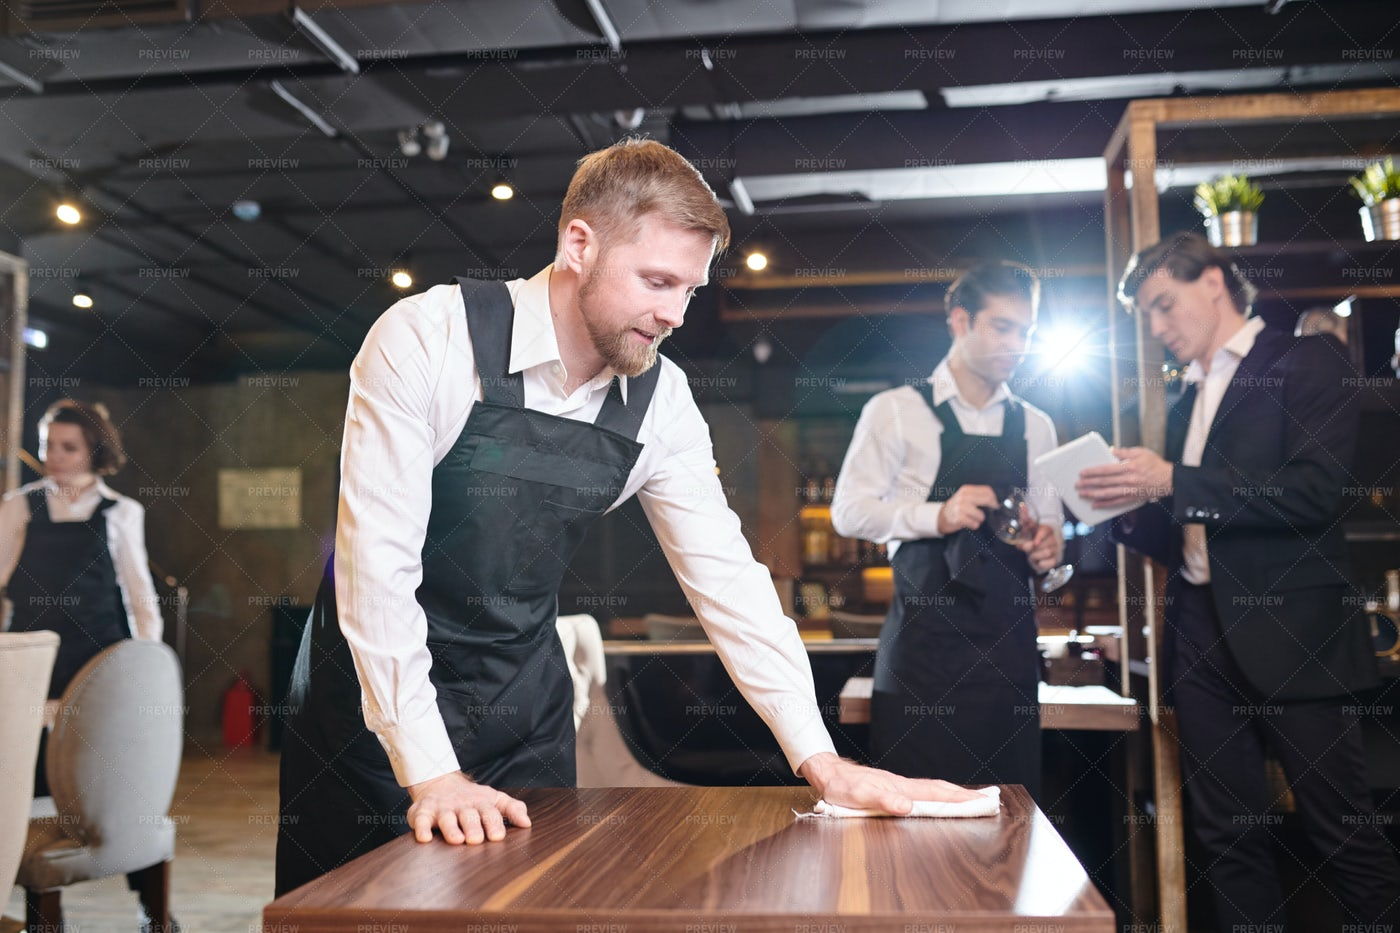 Bearded Waiter Wiping Table In...: Stock Photos